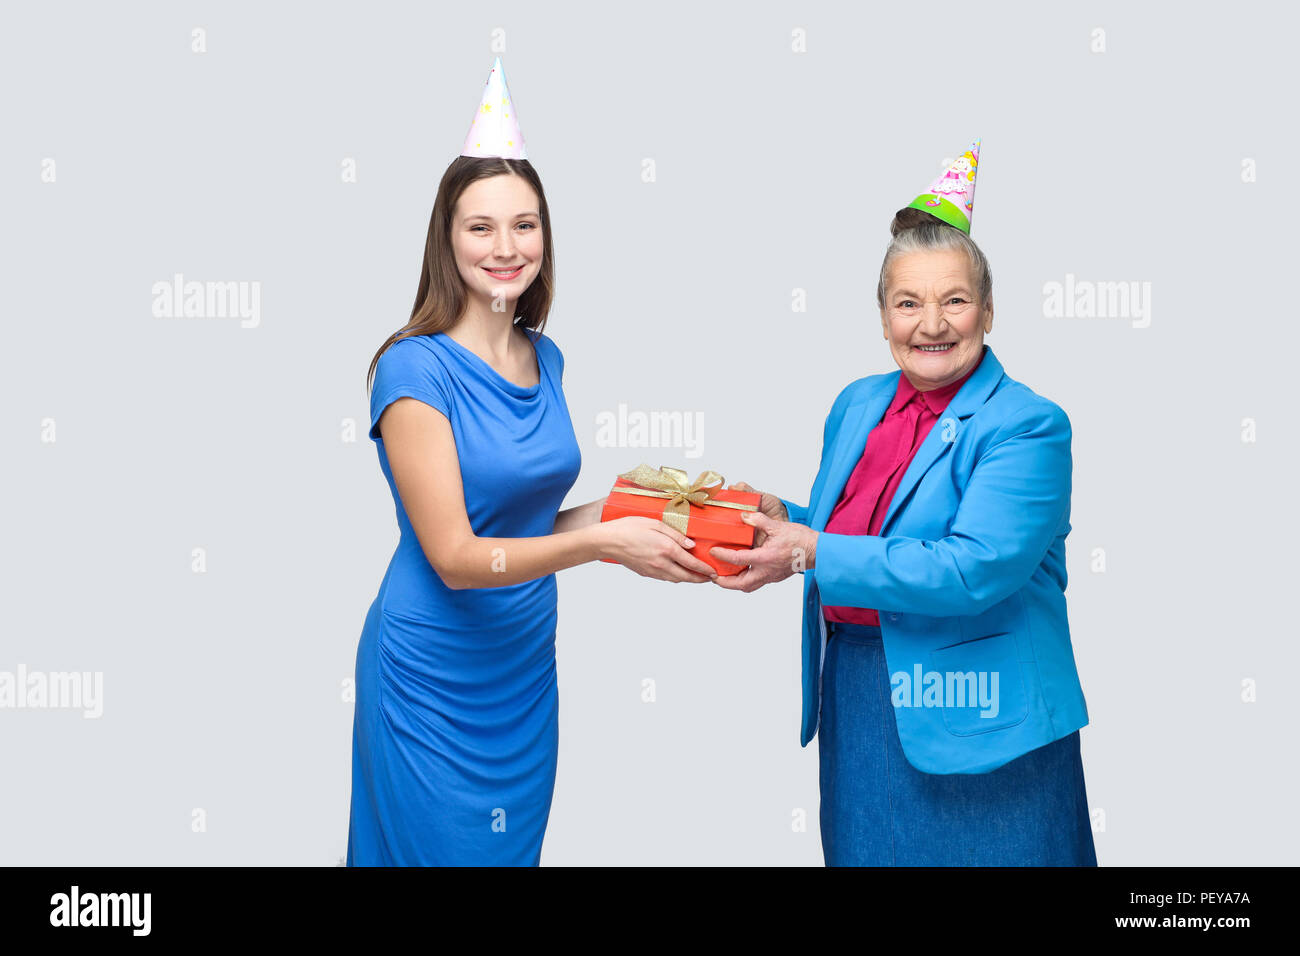 Grandmother In Blue Suit And Hat Holding Red Gift Box Giving To Her Lovely Granddaughter On Birthday Family Happiness Life Event Celebration